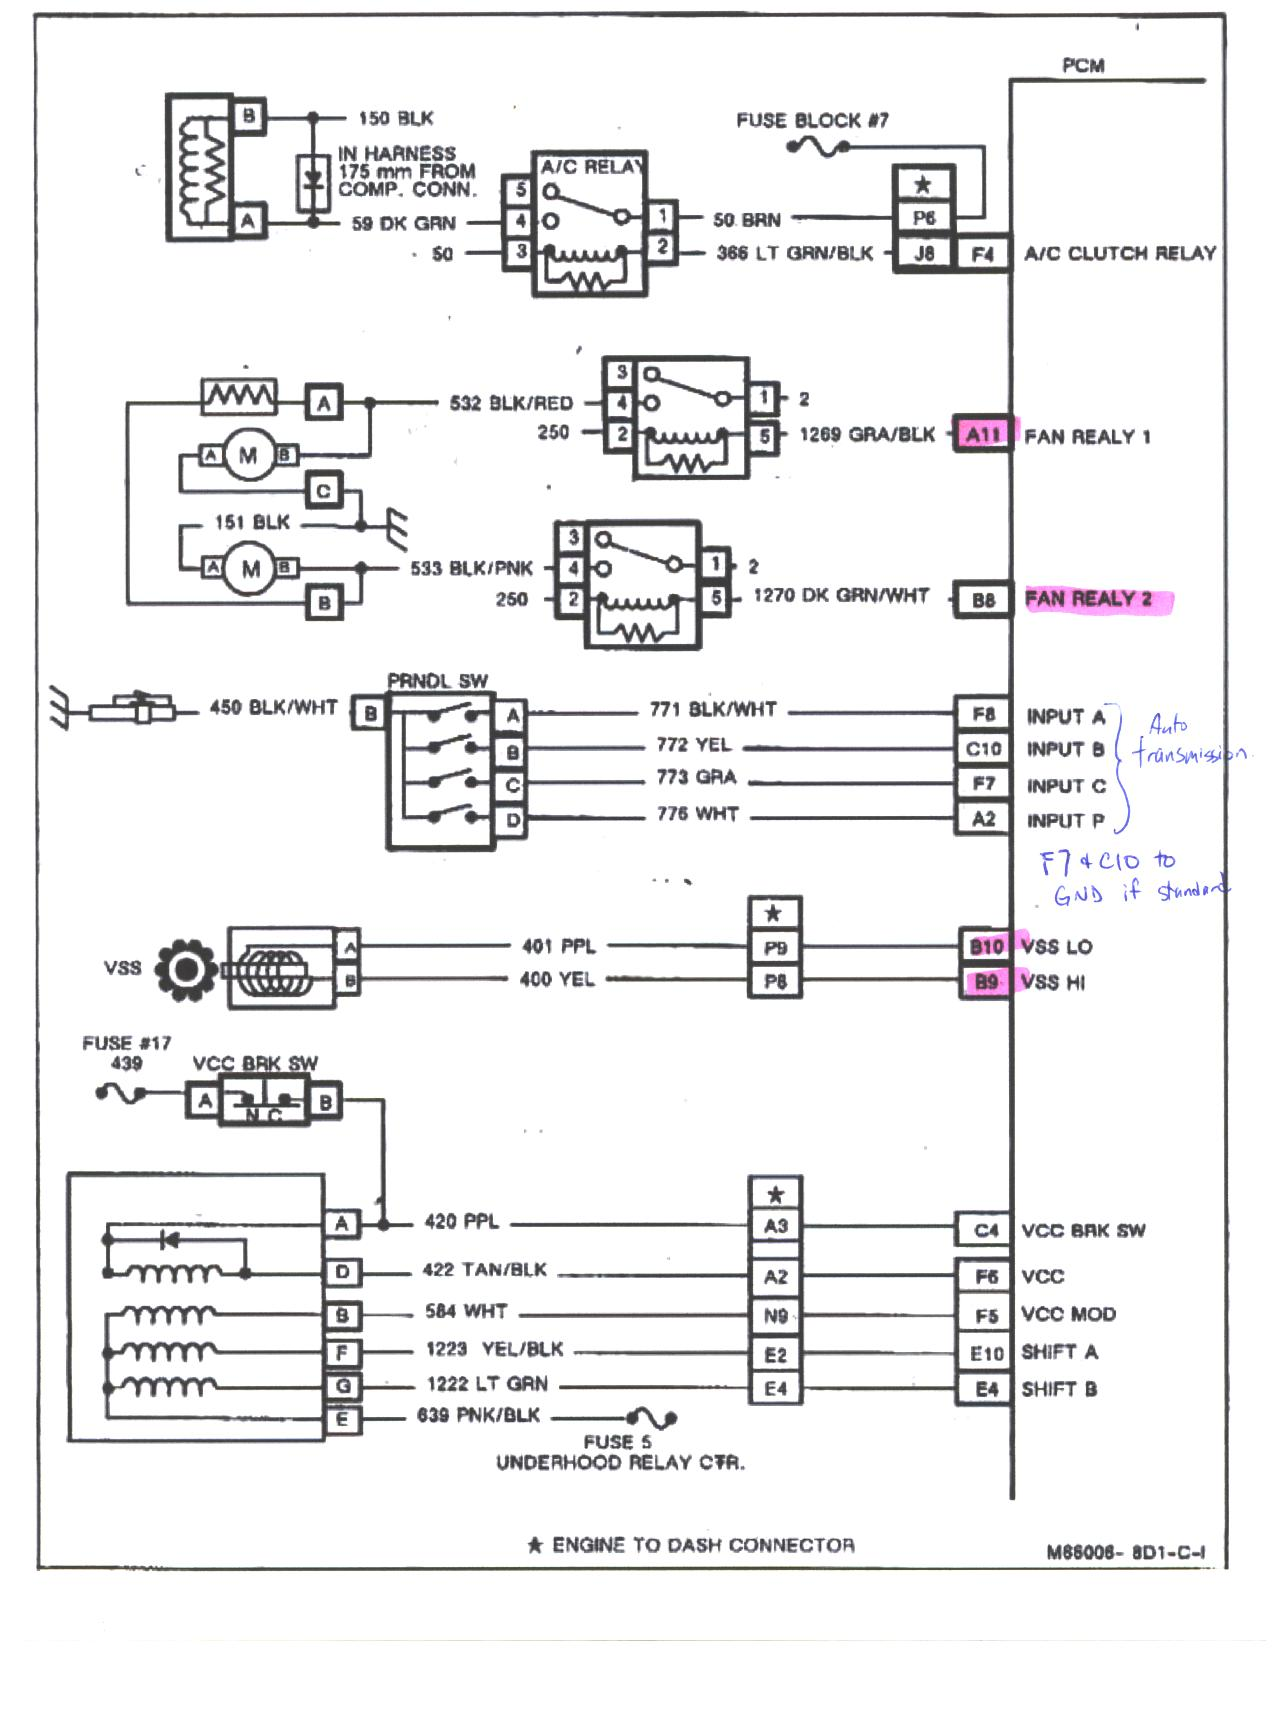 4thdimension org auto wiring diagram 1984 gmc jimmy wiring diagram wiring  diagram shrutiradio 1999 gmc jimmy ke wiring diagram 1998 gmc k2500 wiring  diagram